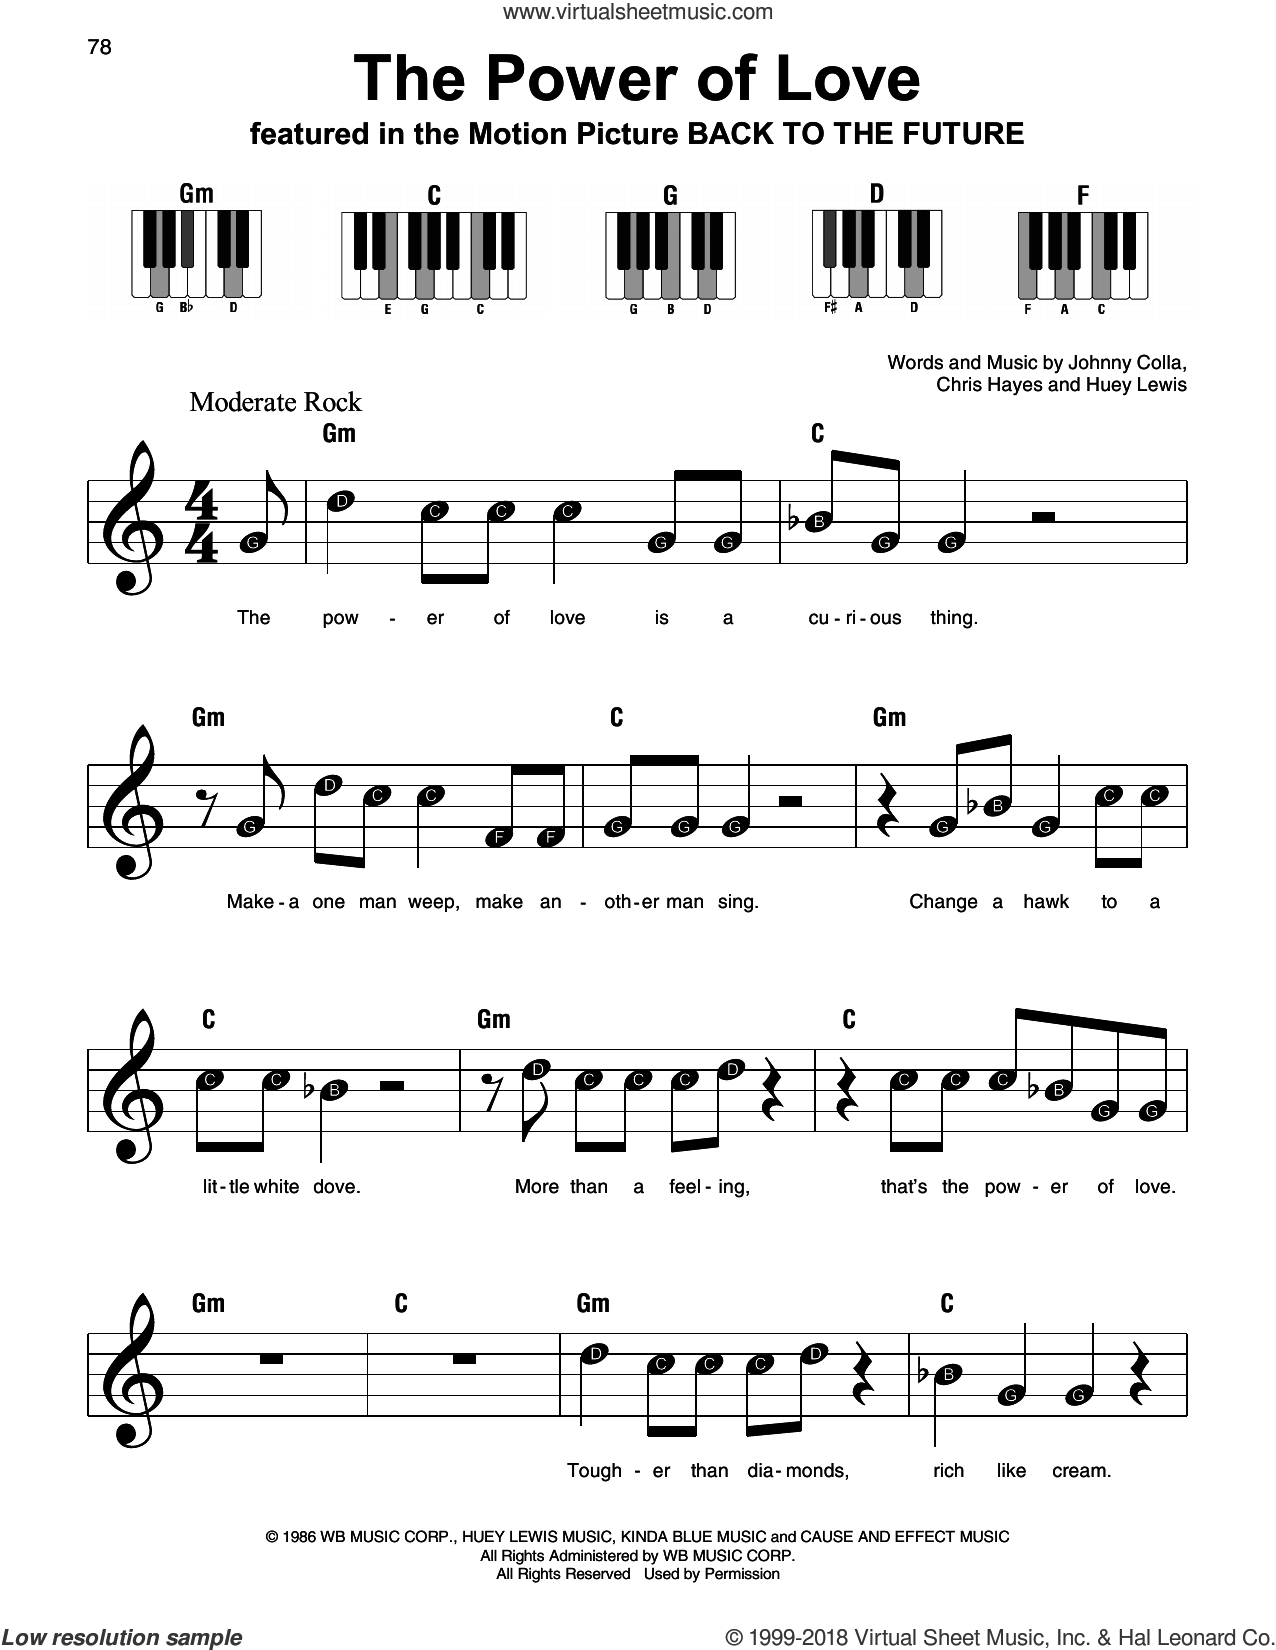 The Power Of Love sheet music for piano solo by Huey Lewis & The News, Chris Hayes, Huey Lewis and Johnny Colla, beginner skill level